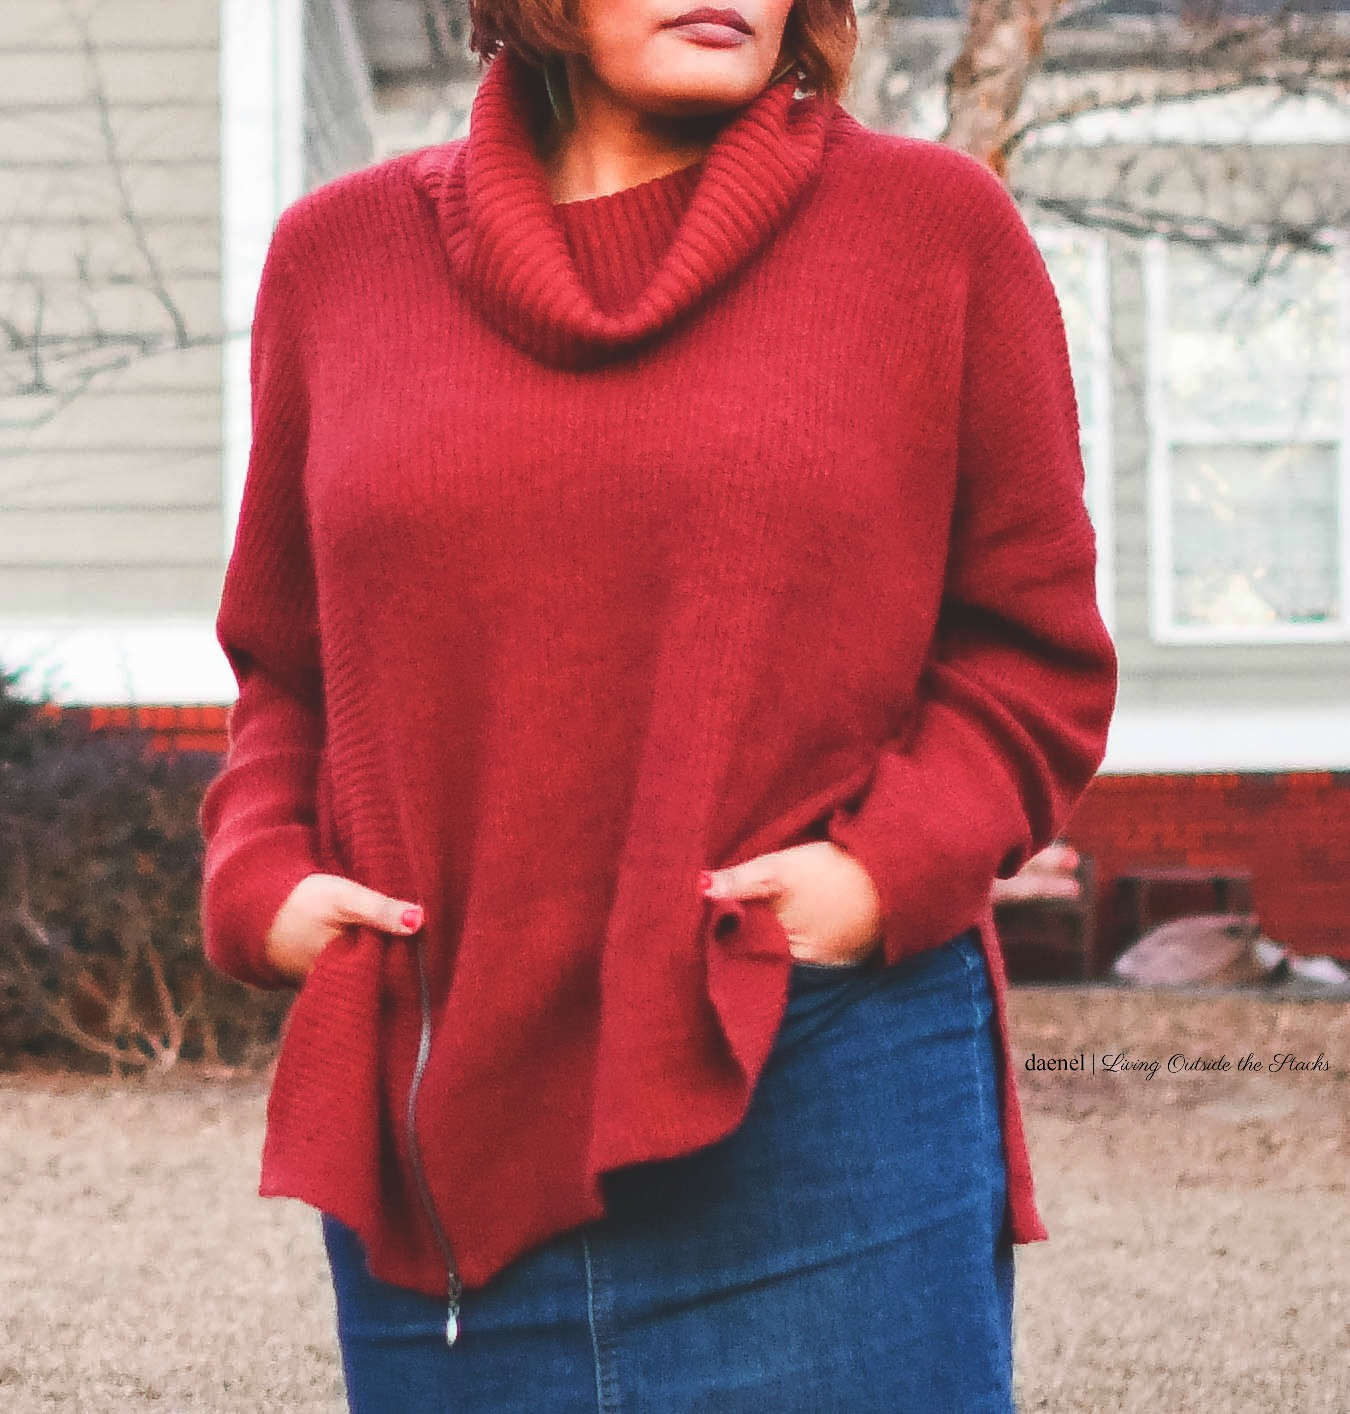 Oversized Burgundy Sweater Denim Skirt Burgundy Tights and Brown Boots {living outside the stacks}